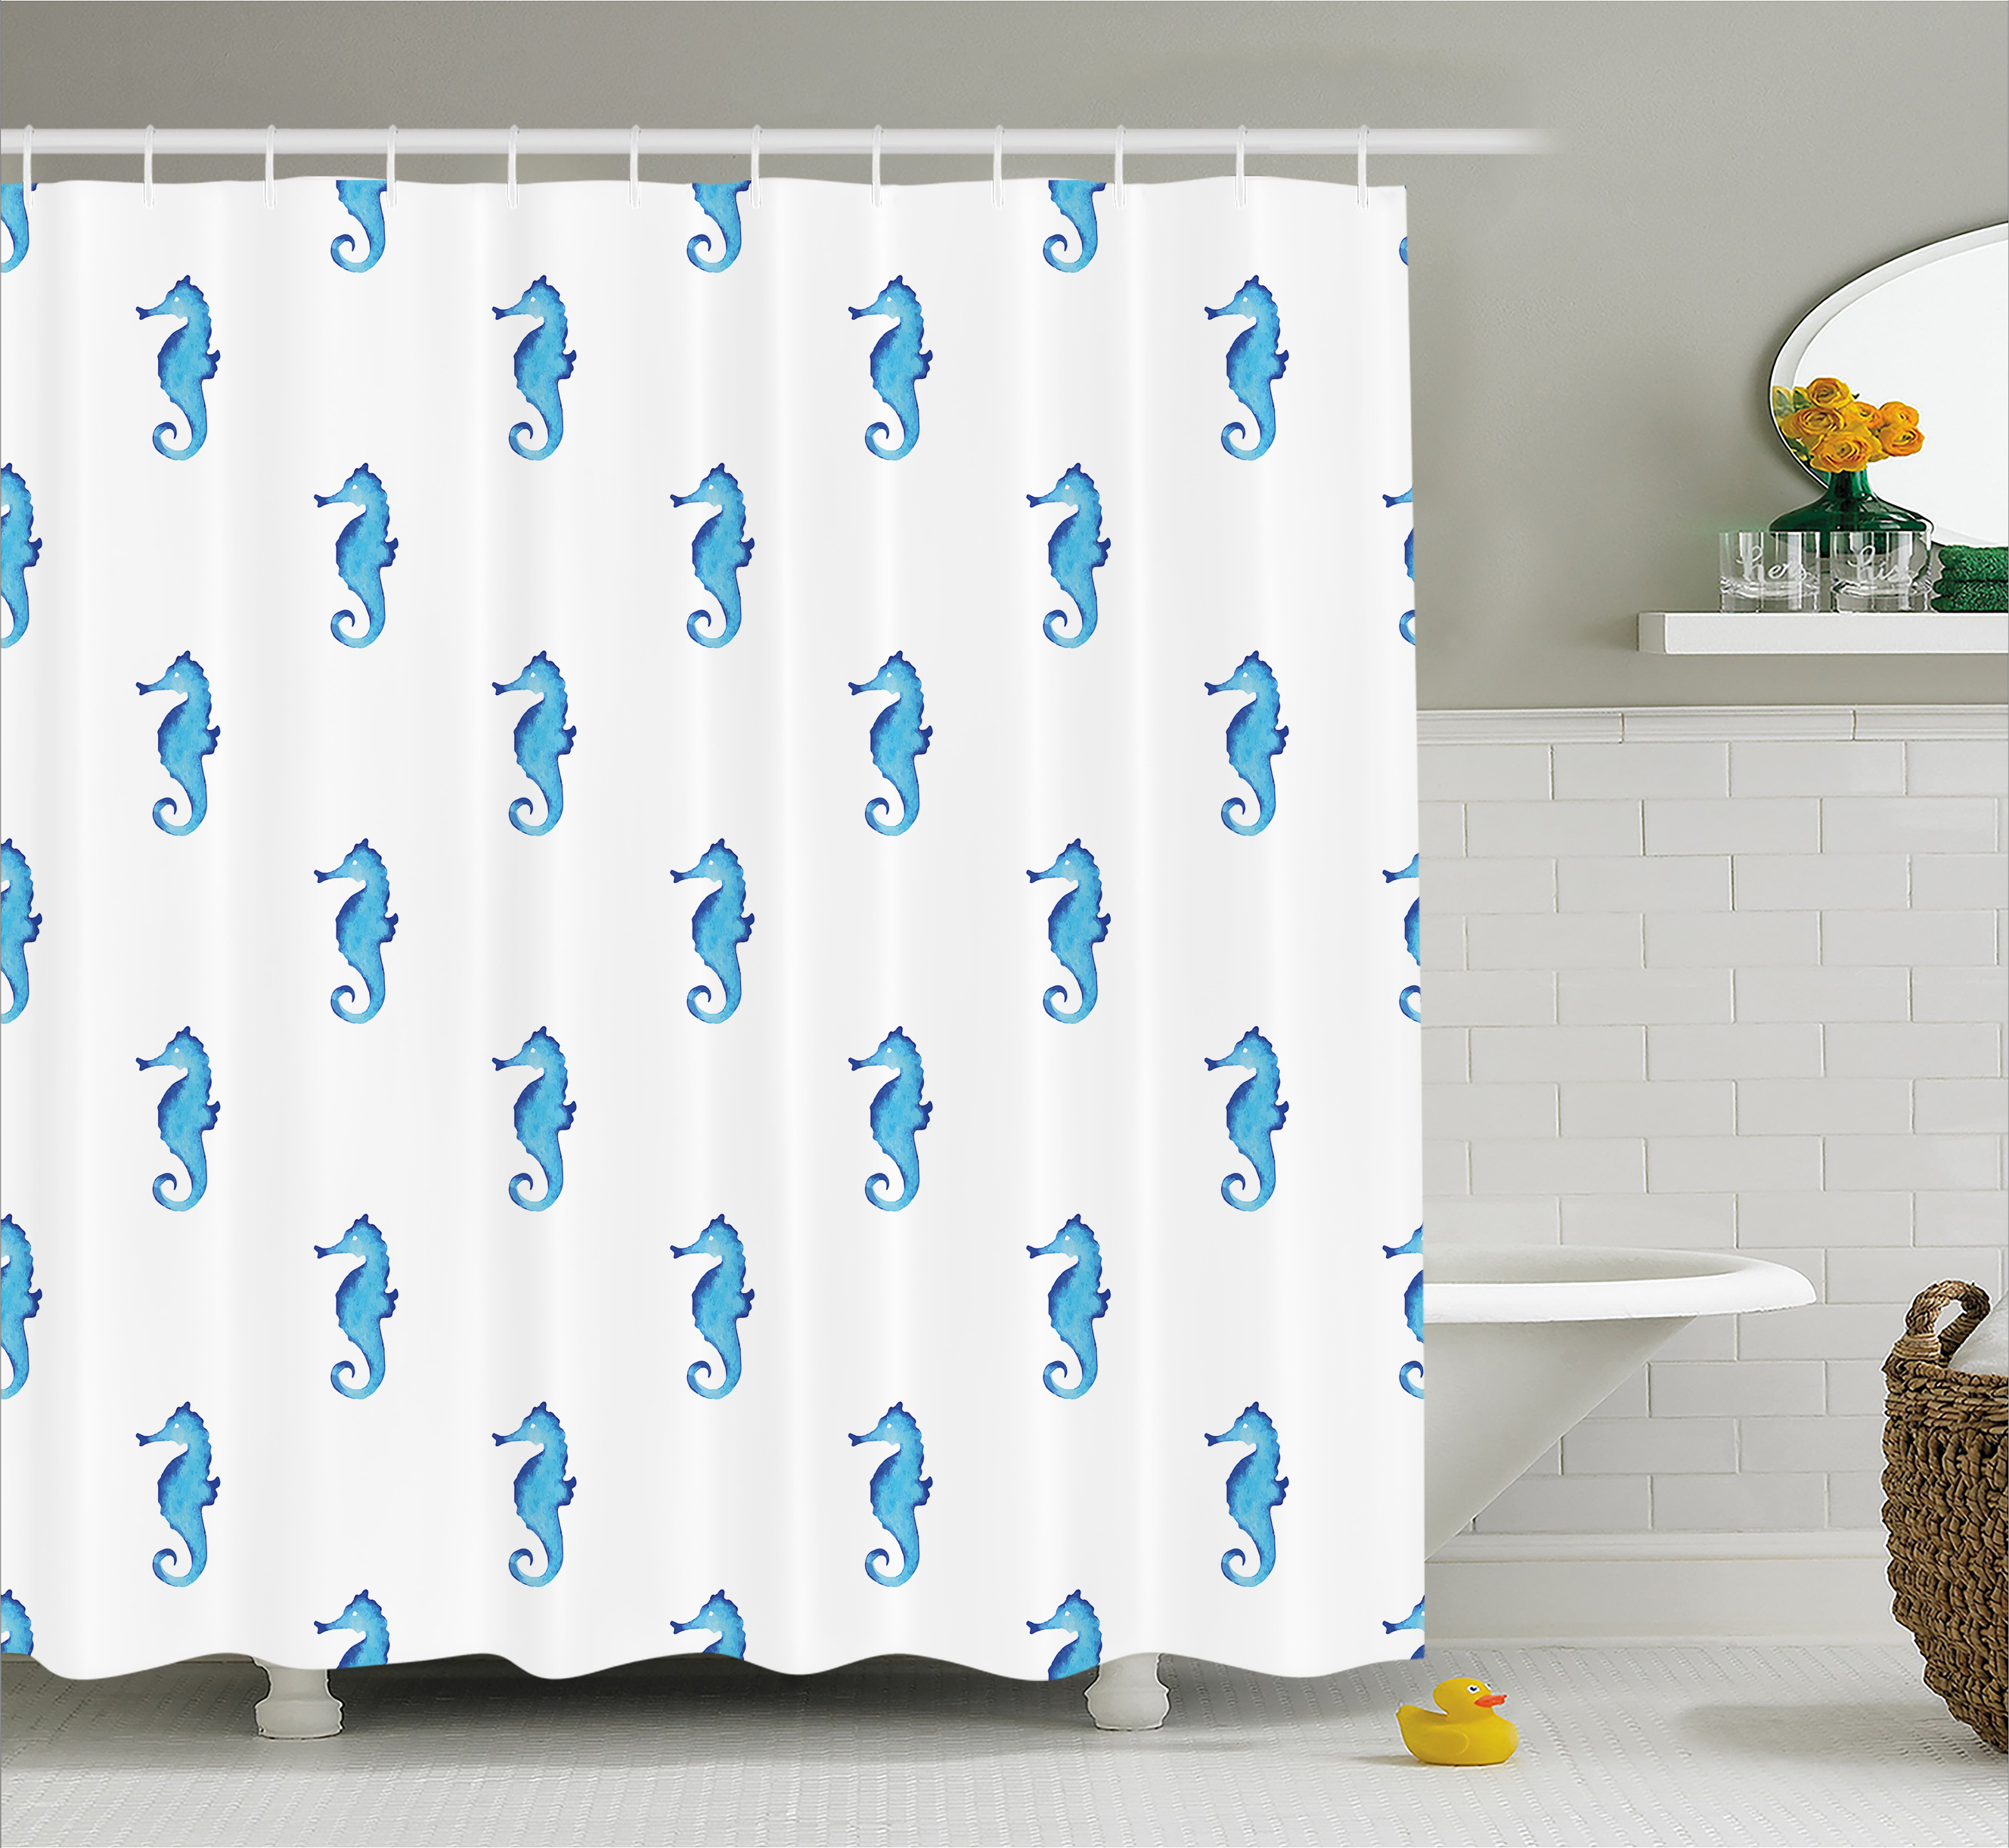 Animal Decor Shower Curtain, Unusual Equine Shaped Fish Motif in Simple Featured Backdrop Cottage, Fabric Bathroom Set with Hooks, 69W X 84L Inches Extra Long, Turquoise White, by Ambesonne